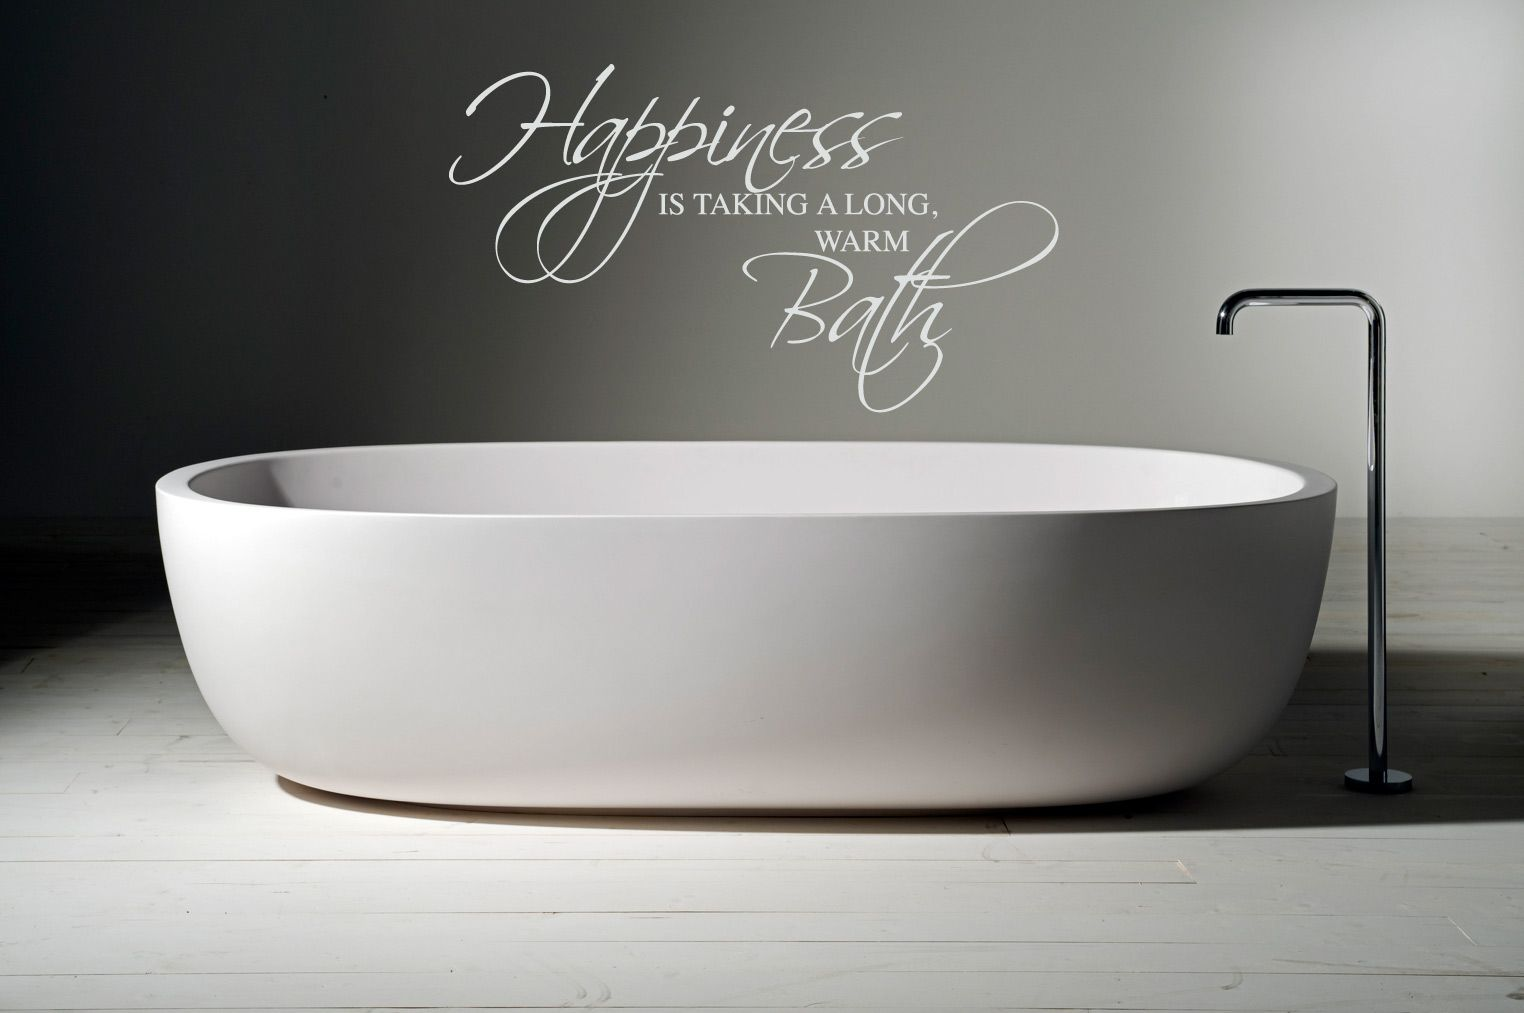 Bathroom Sink Quotes happiness is taking a long warm bath #quotes http://blog